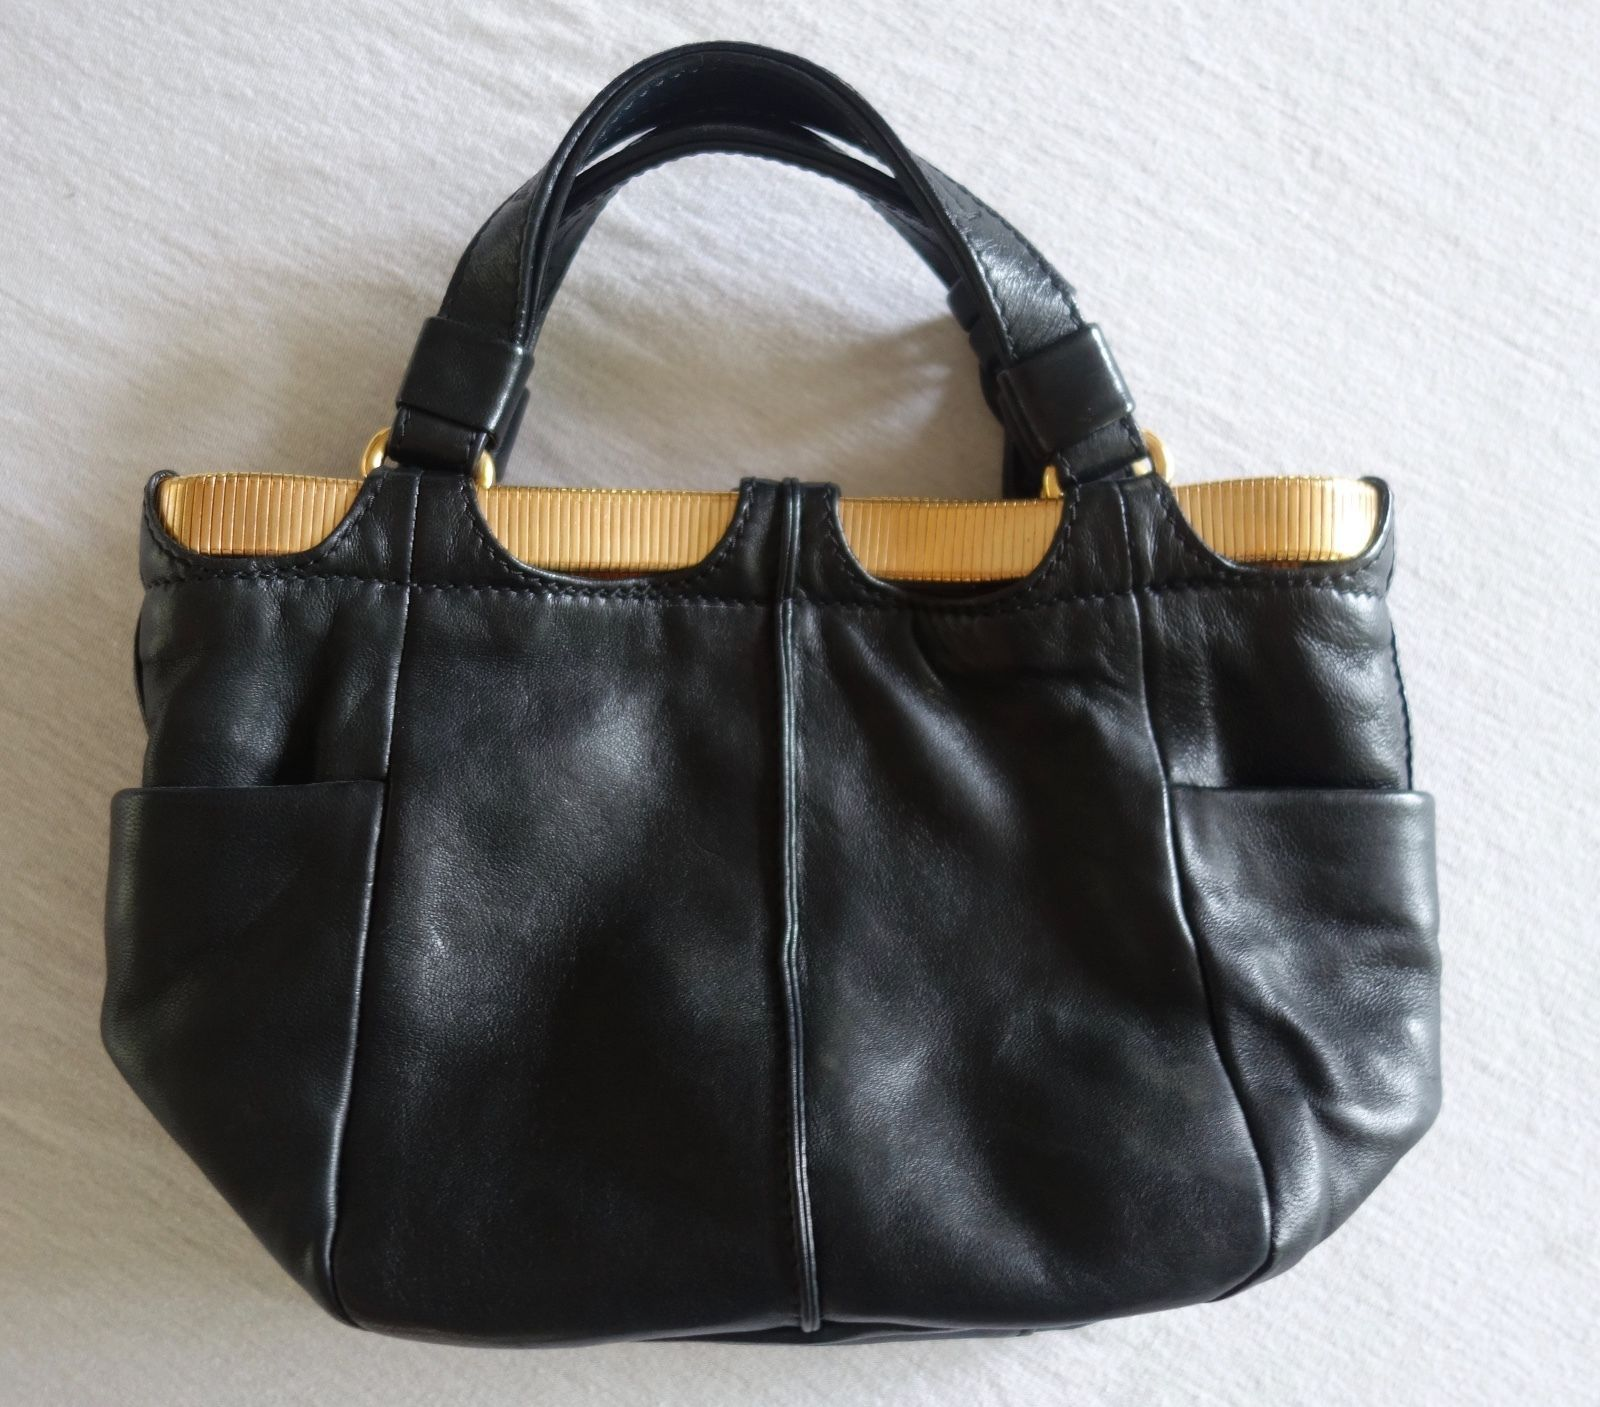 Jimmy Choo Black Leather Small Tote Bag W Rose Gold Hardware